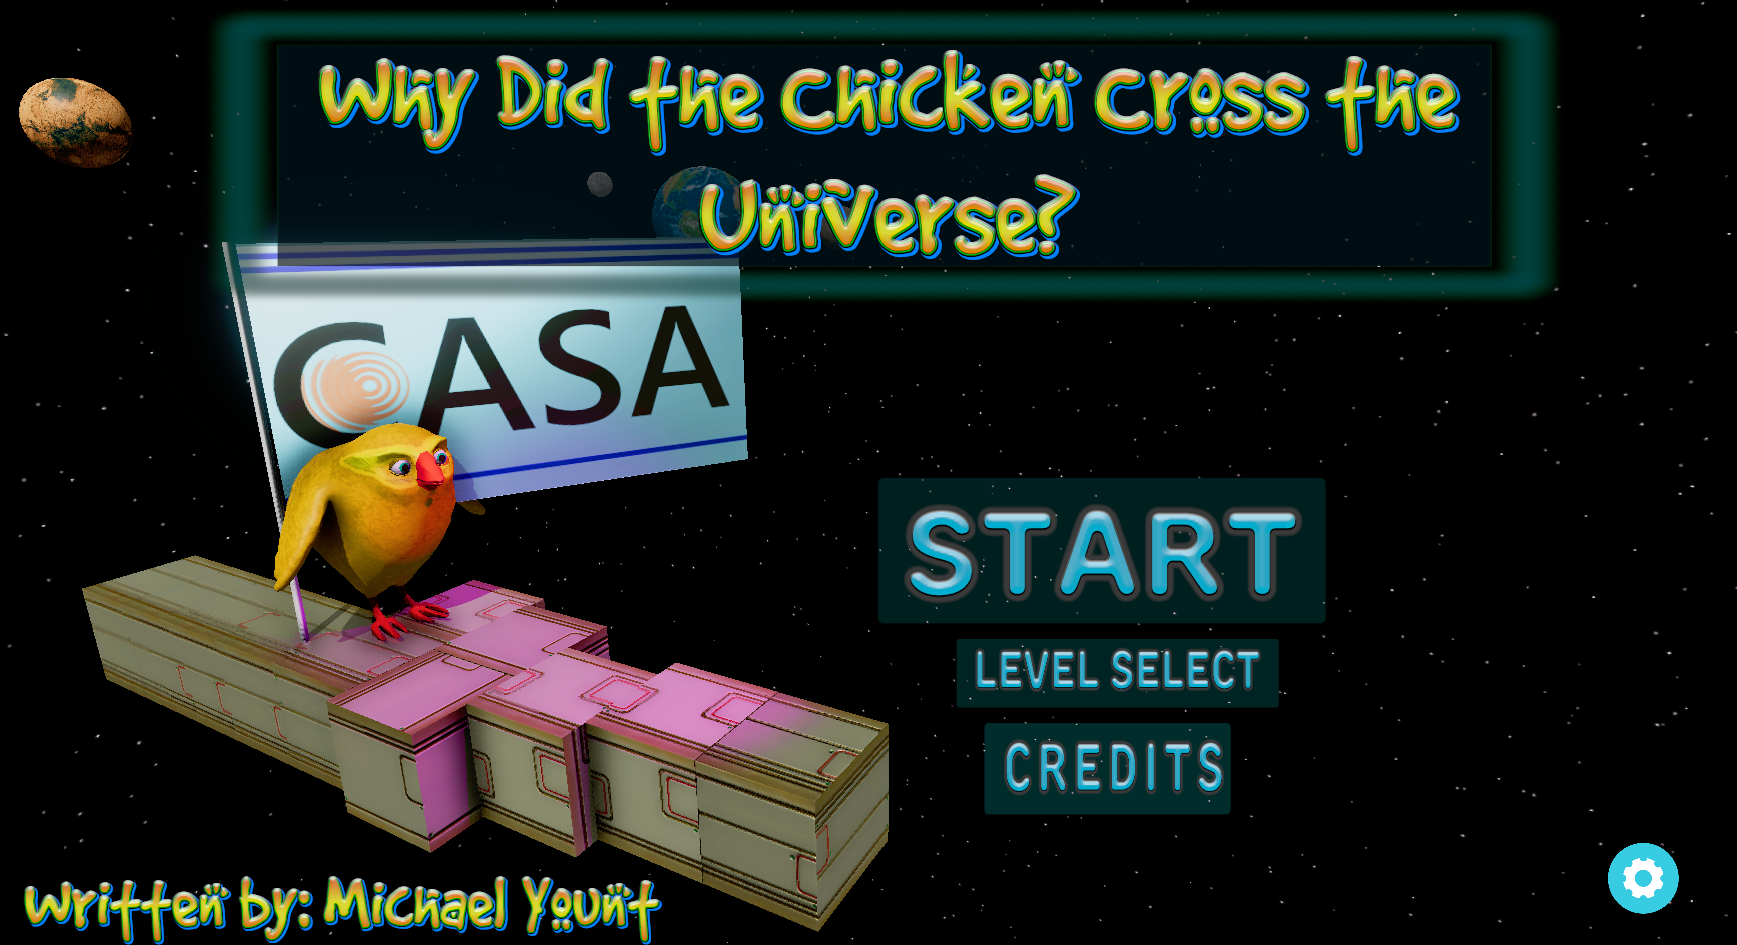 Why Did the Chicken Cross the Universe?